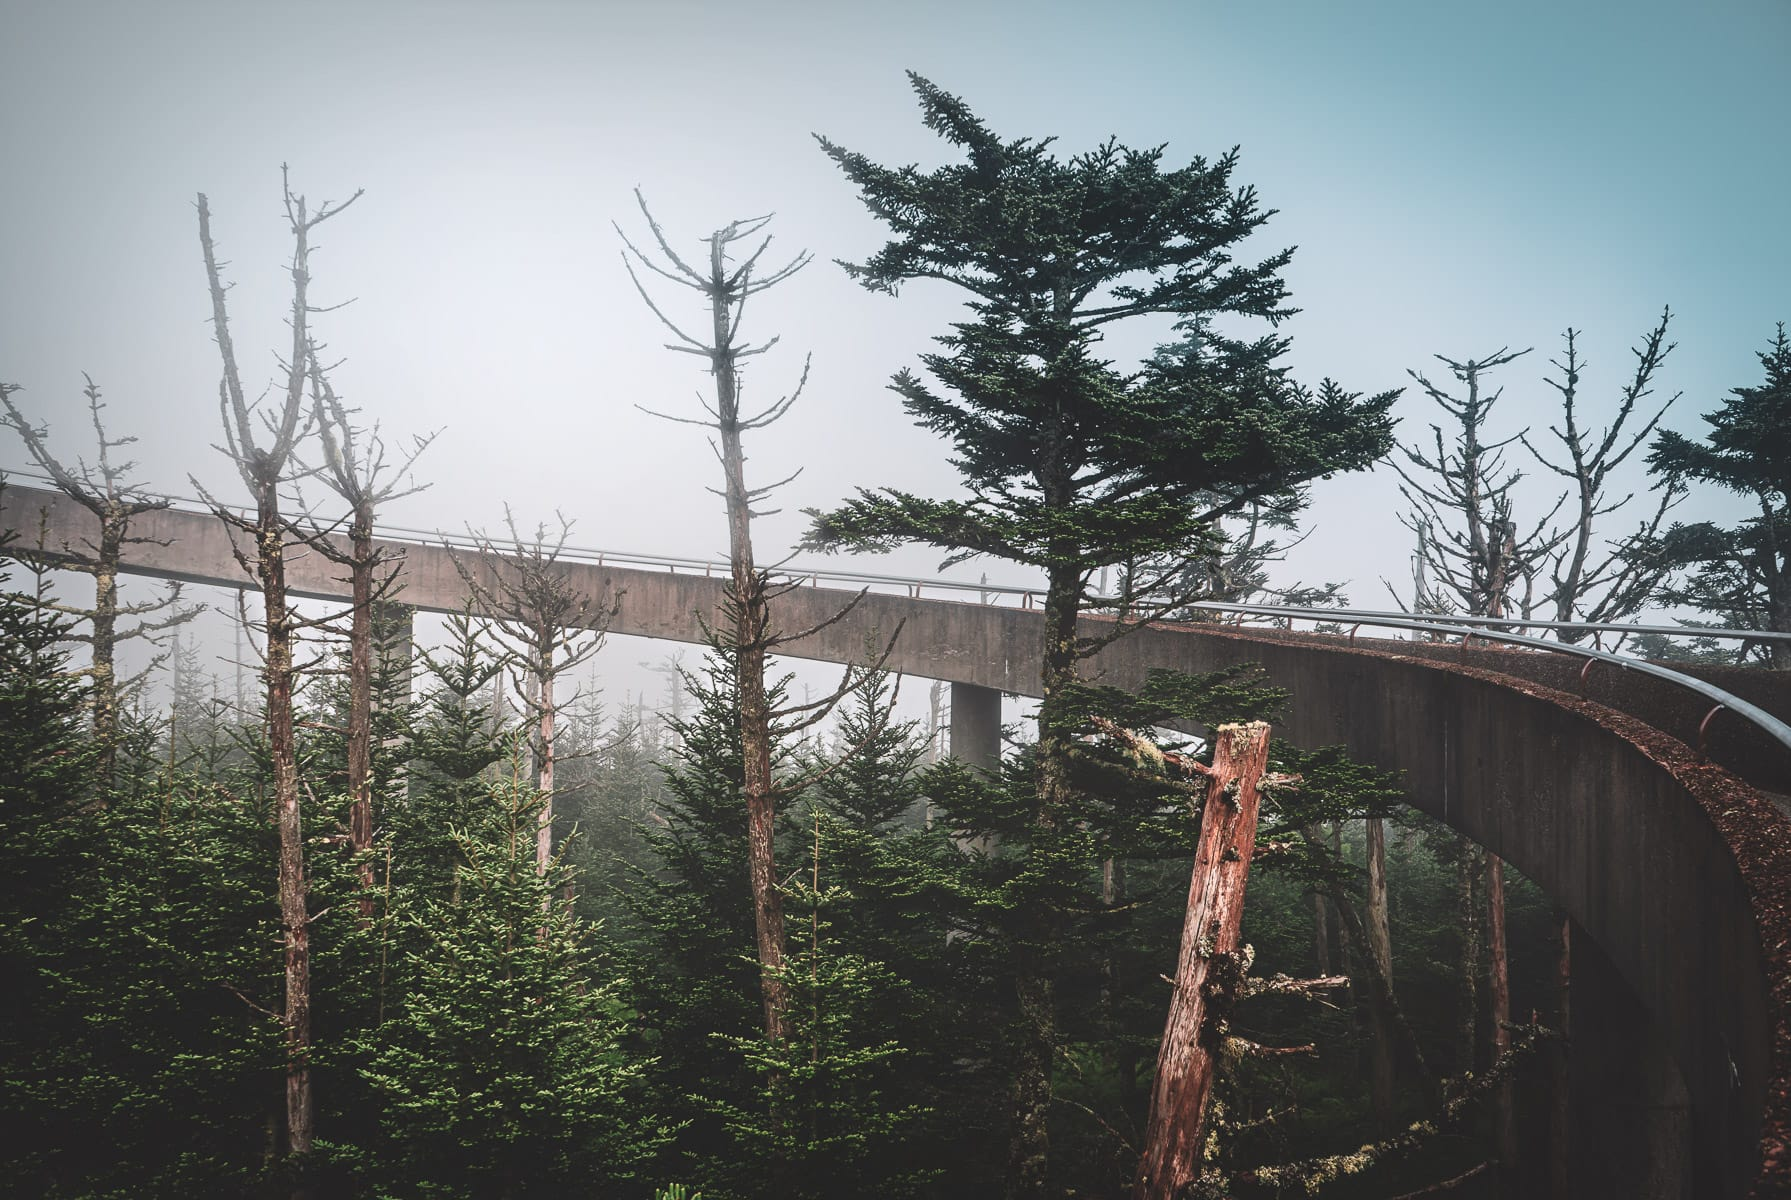 The ramp to the observation tower at Clingmans Dome curves through the early-morning Great Smoky Mountains National Park fog.